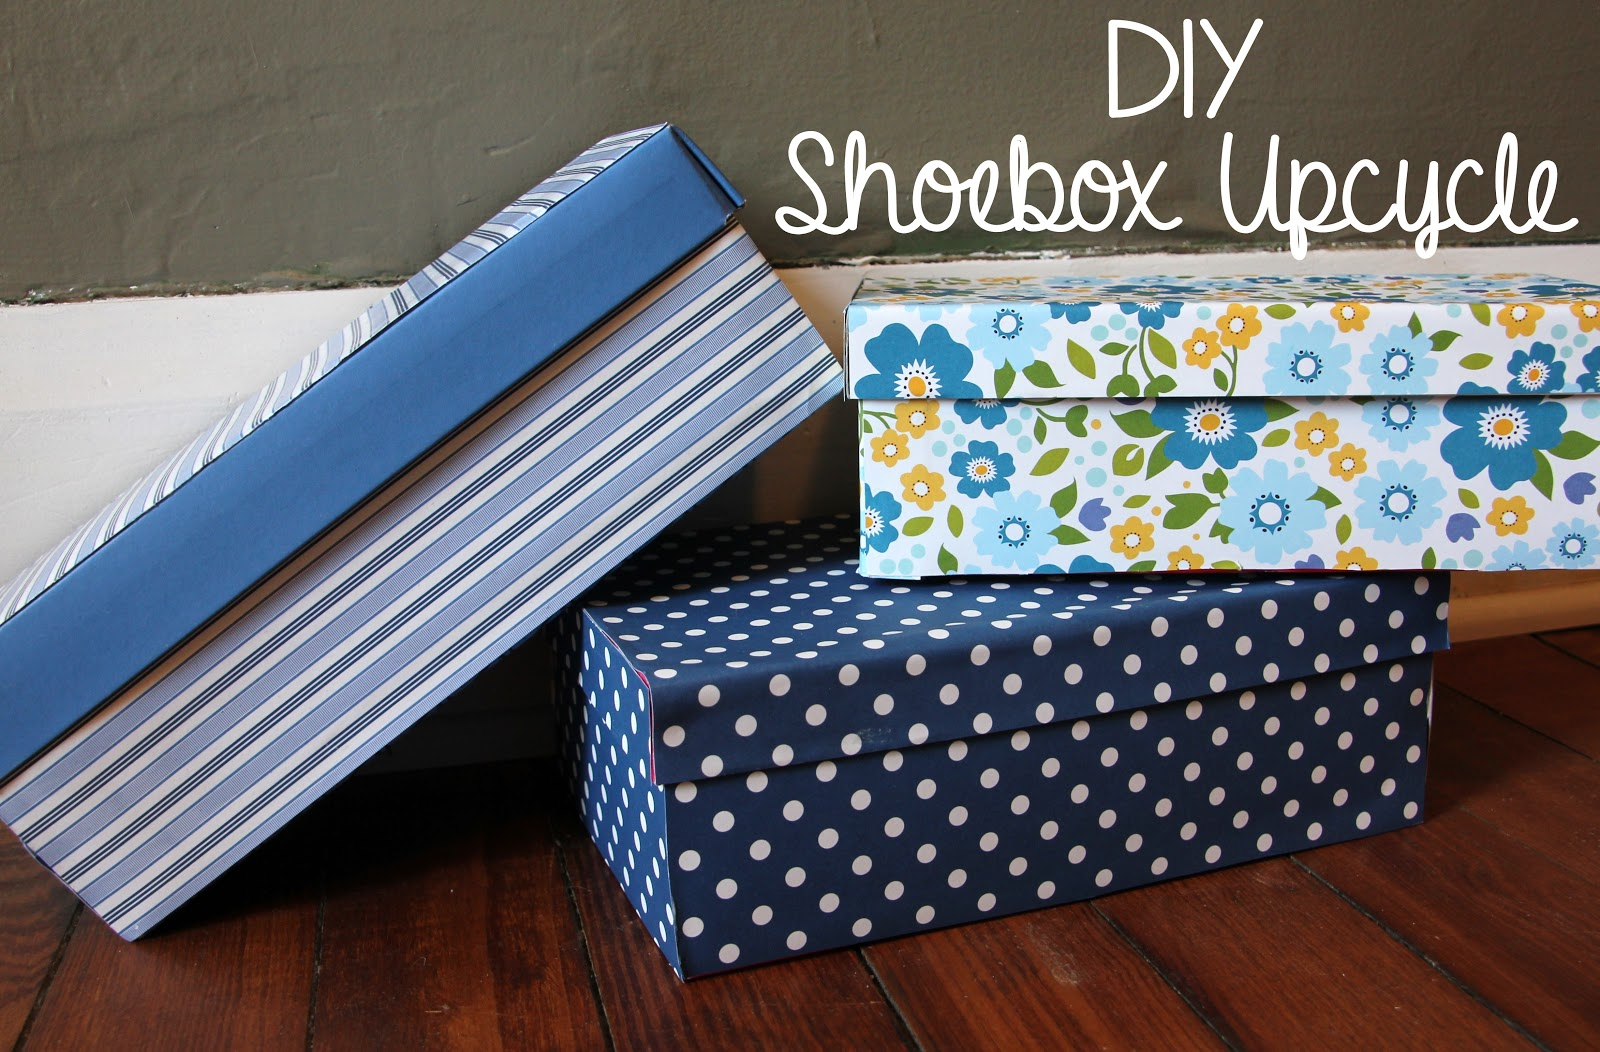 Lovely little life diy pretty shoebox upcycle for Diy upcycle